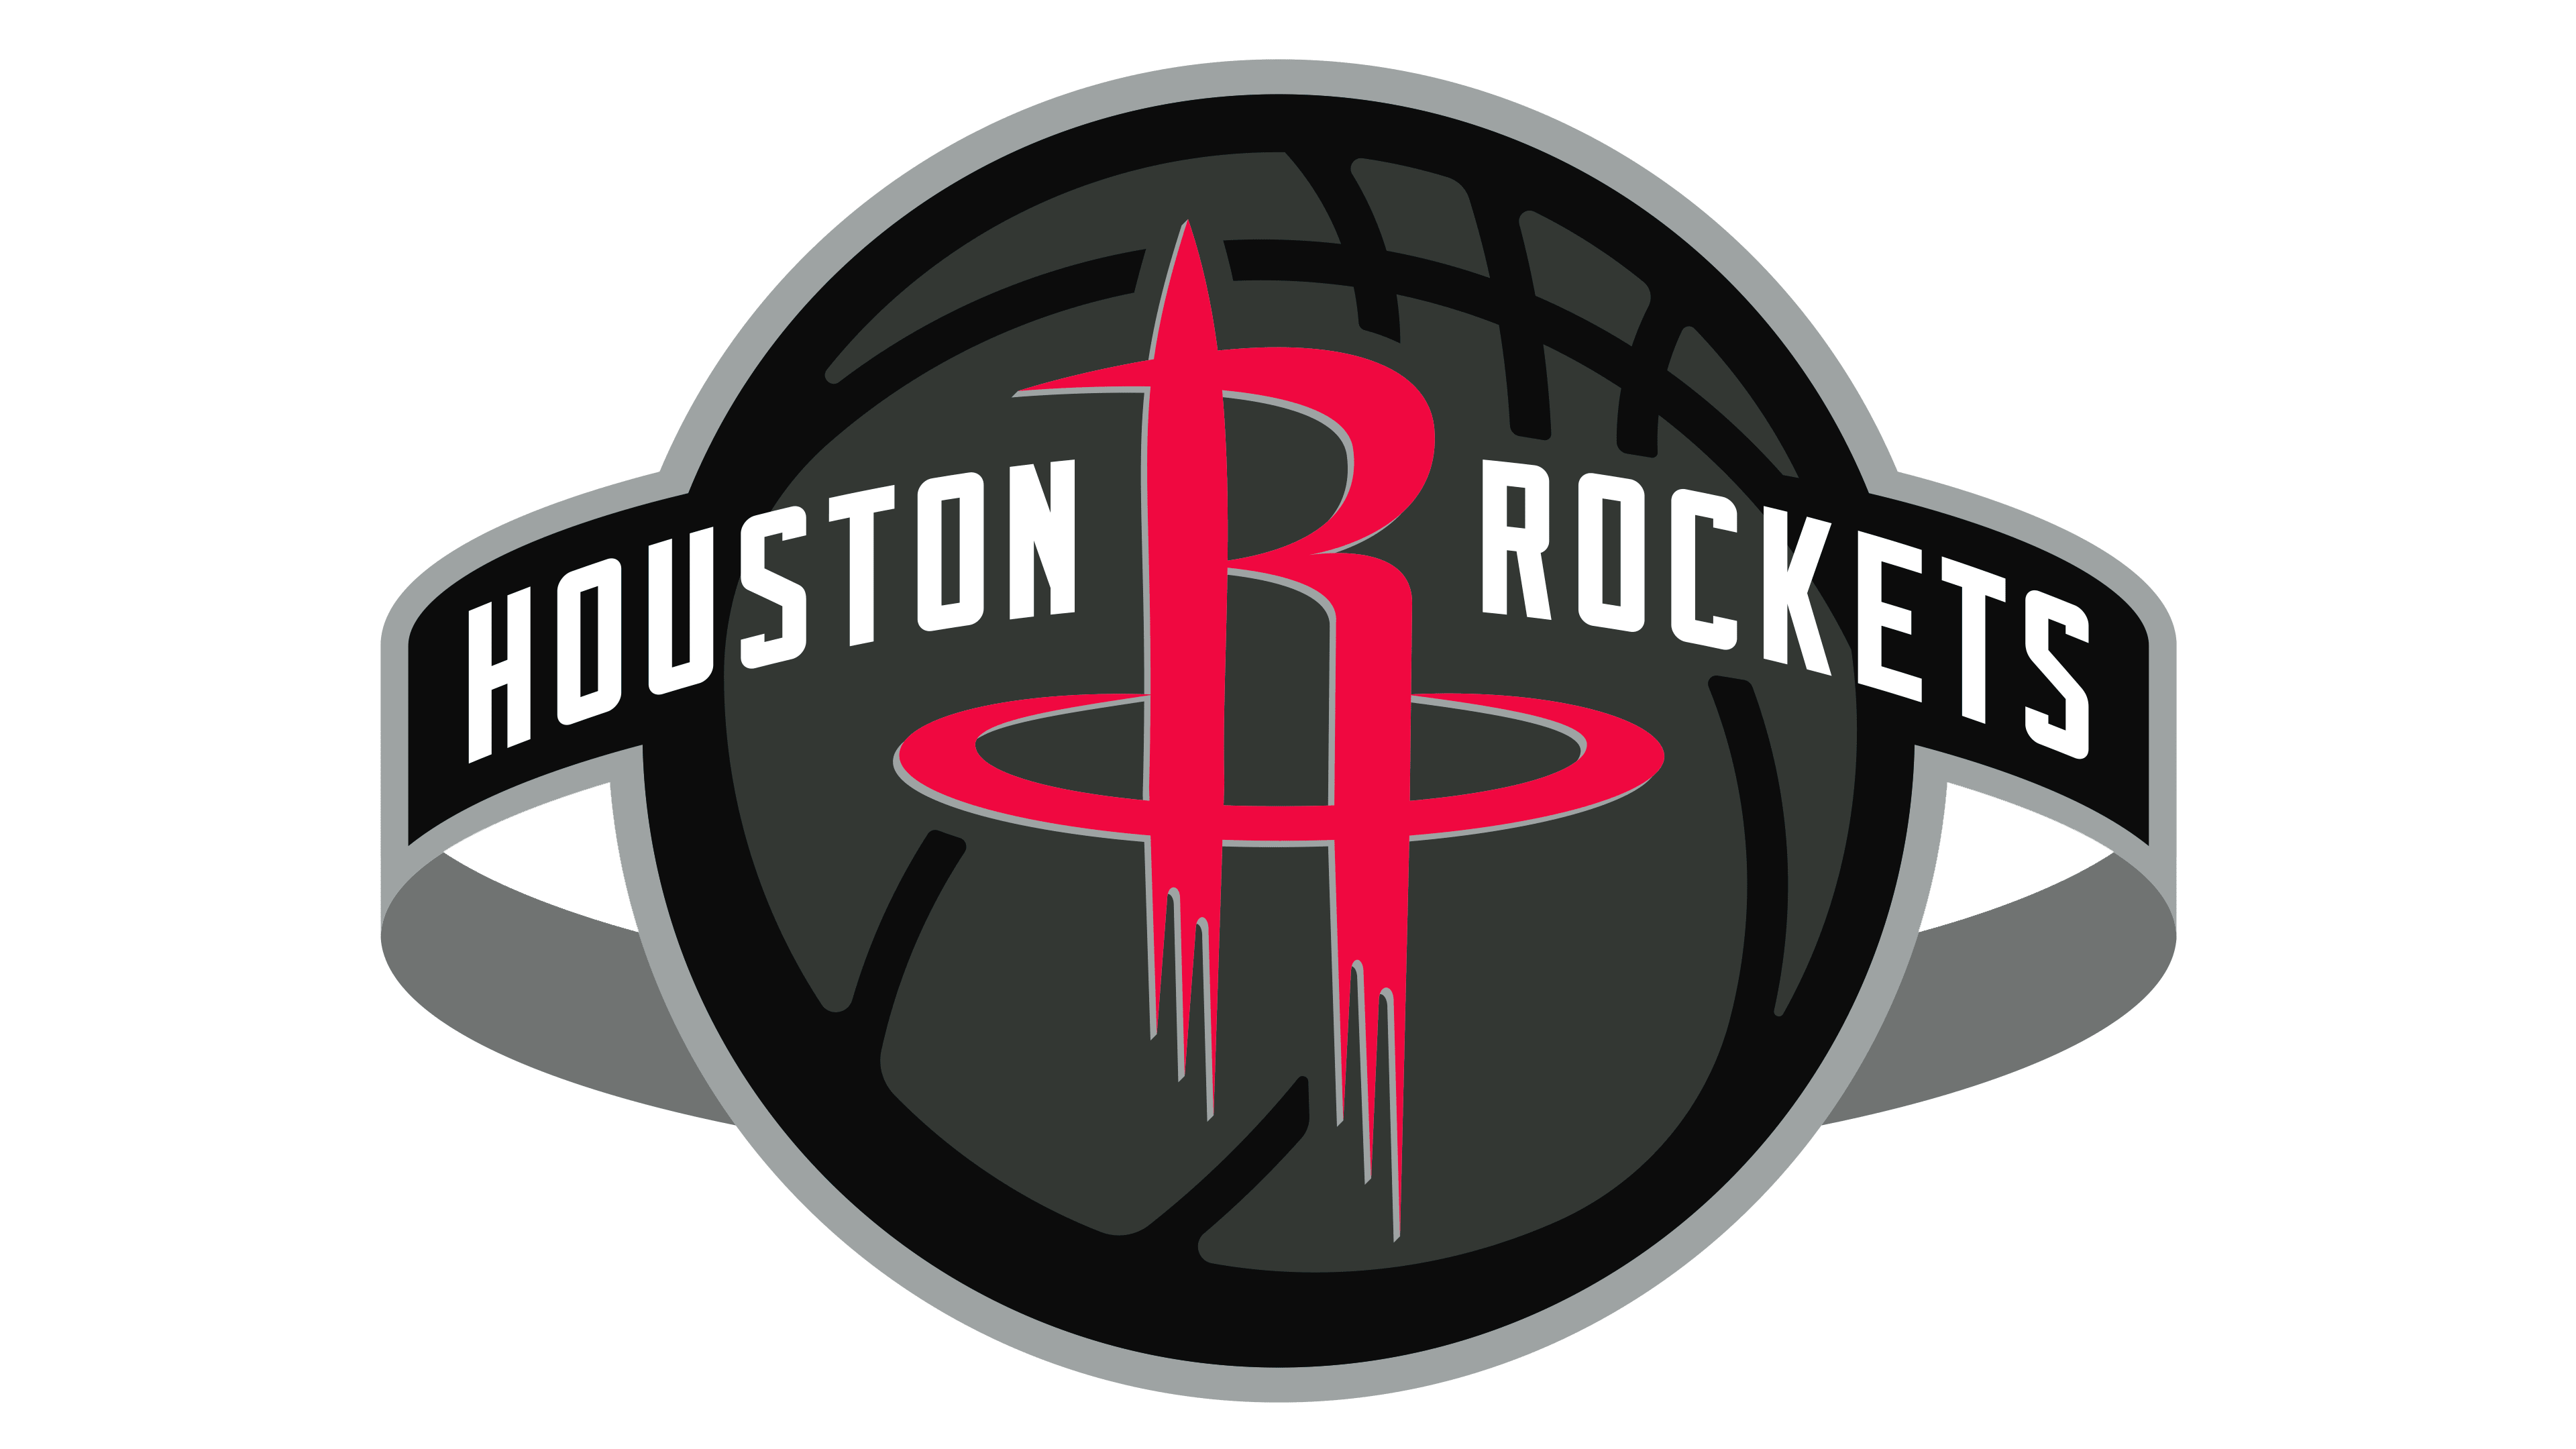 Houston Rockets Logos.